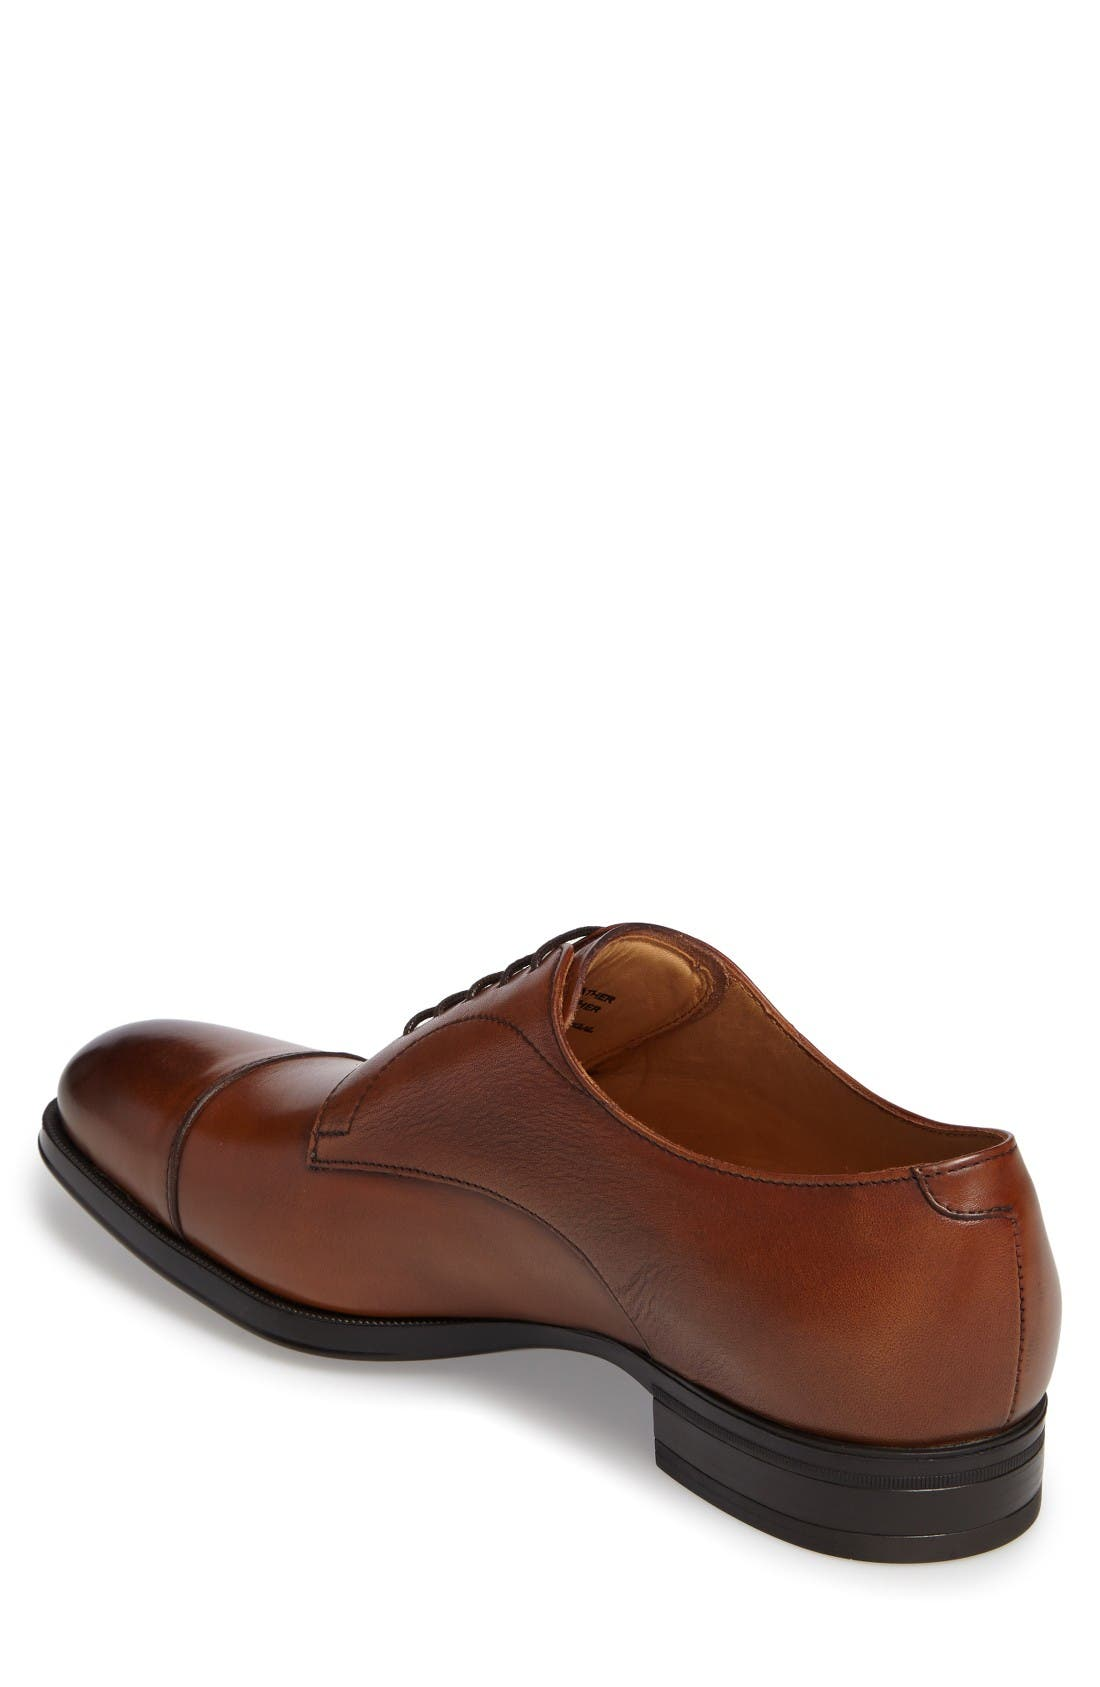 Tosto Cap Toe Derby,                             Alternate thumbnail 2, color,                             Luggage Leather